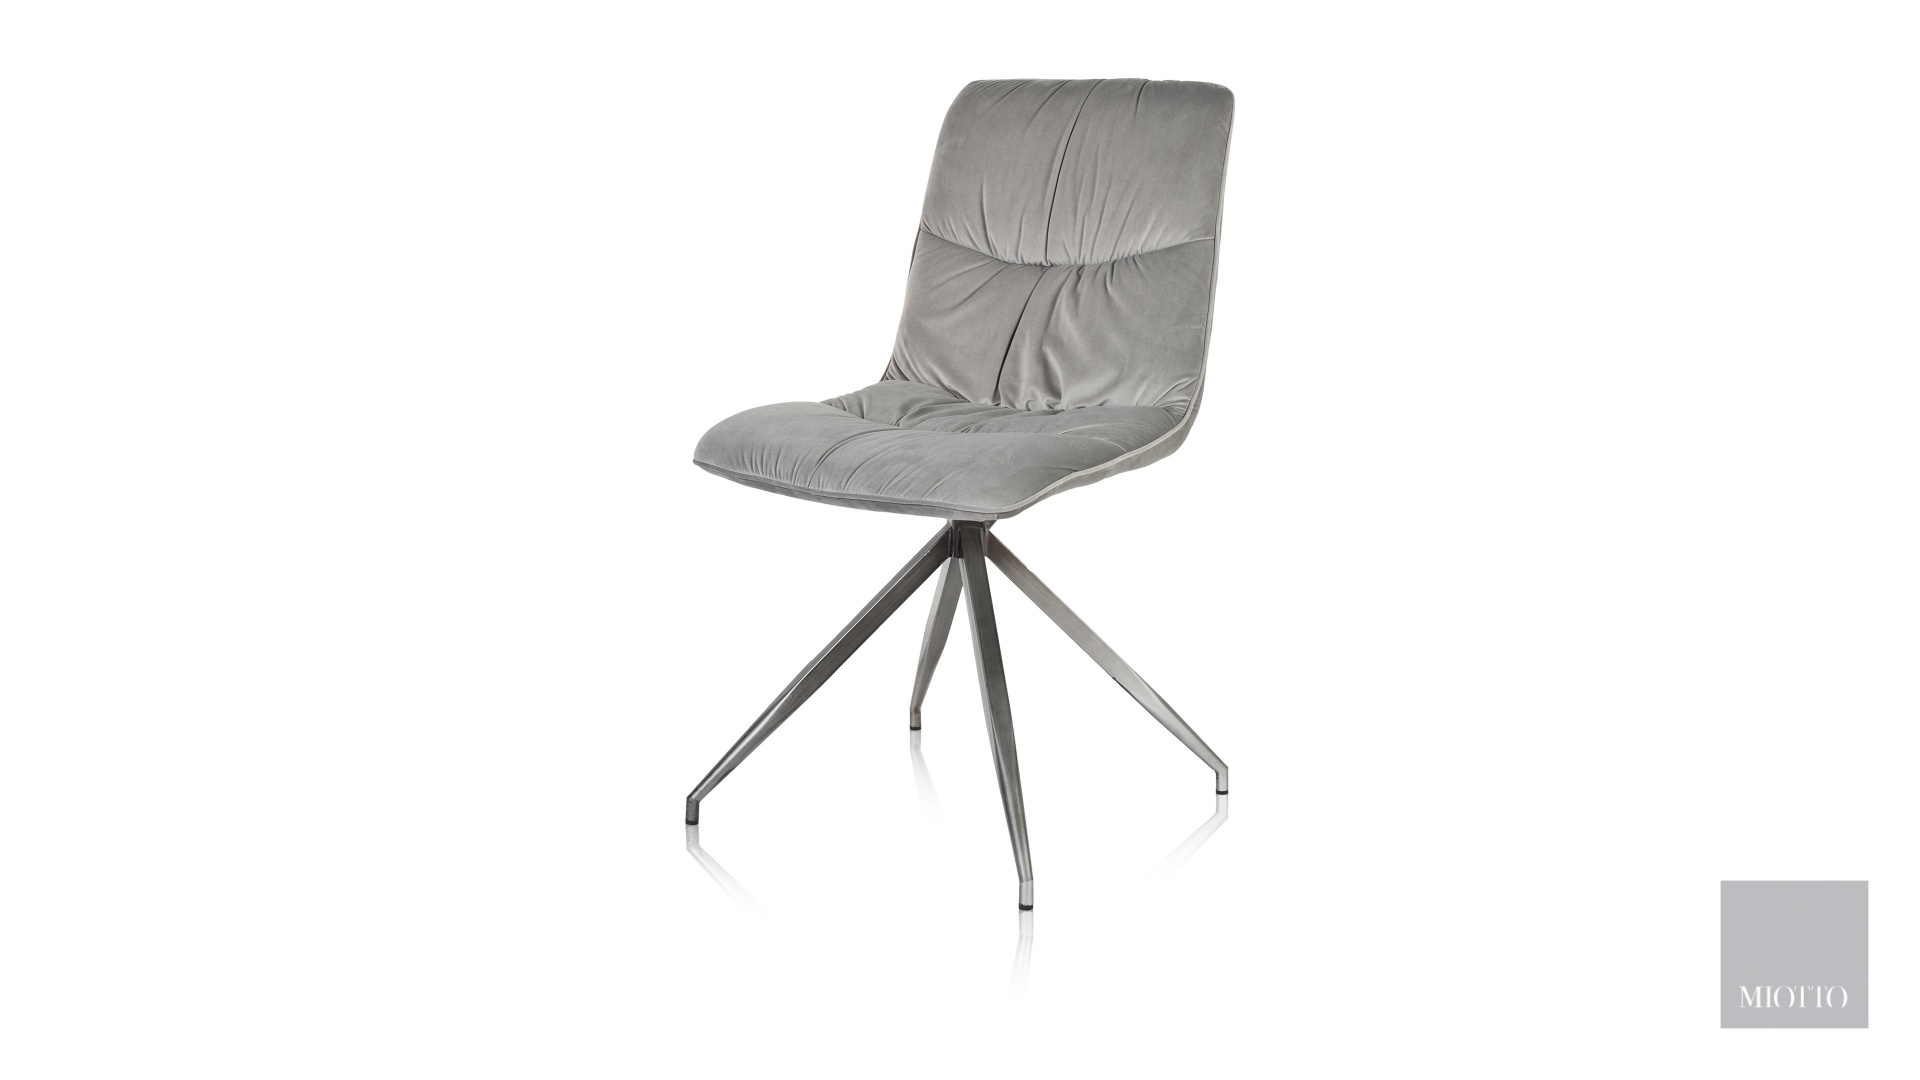 miotto_Tressa grey dining chair miotto furniture t